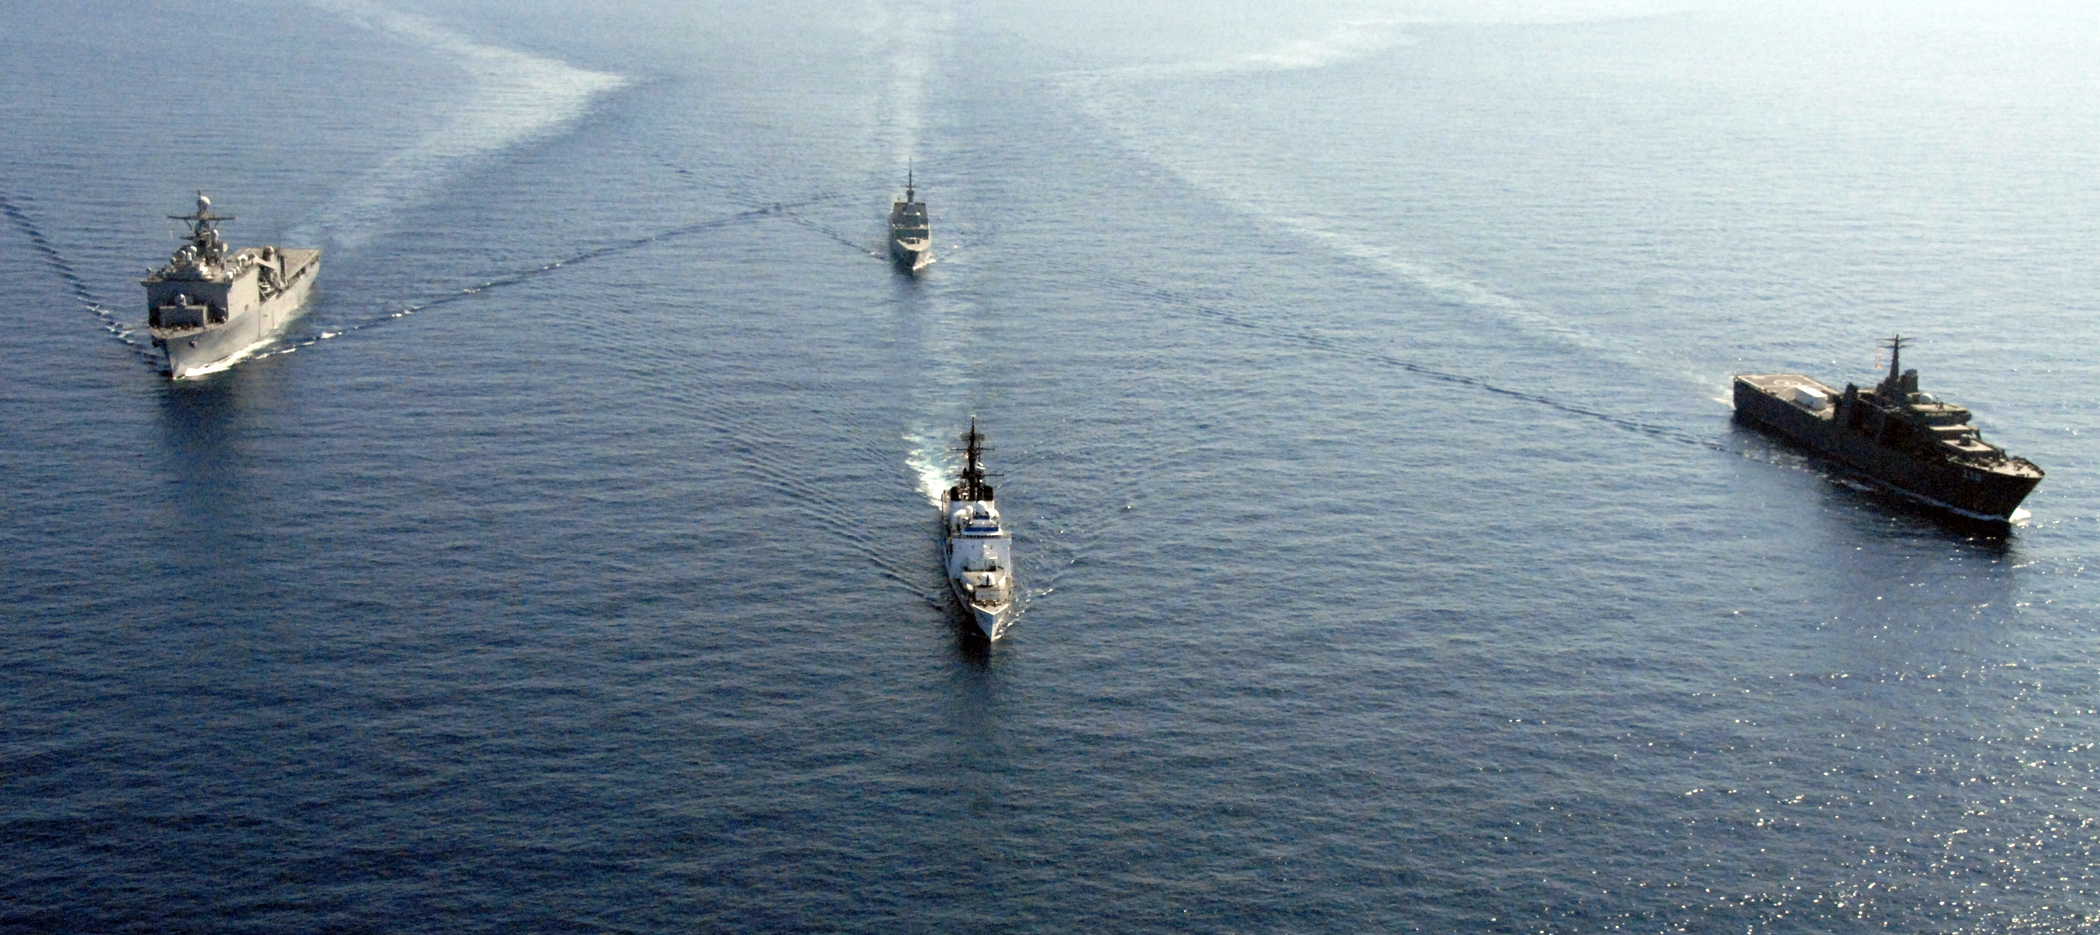 Defending the South China Sea